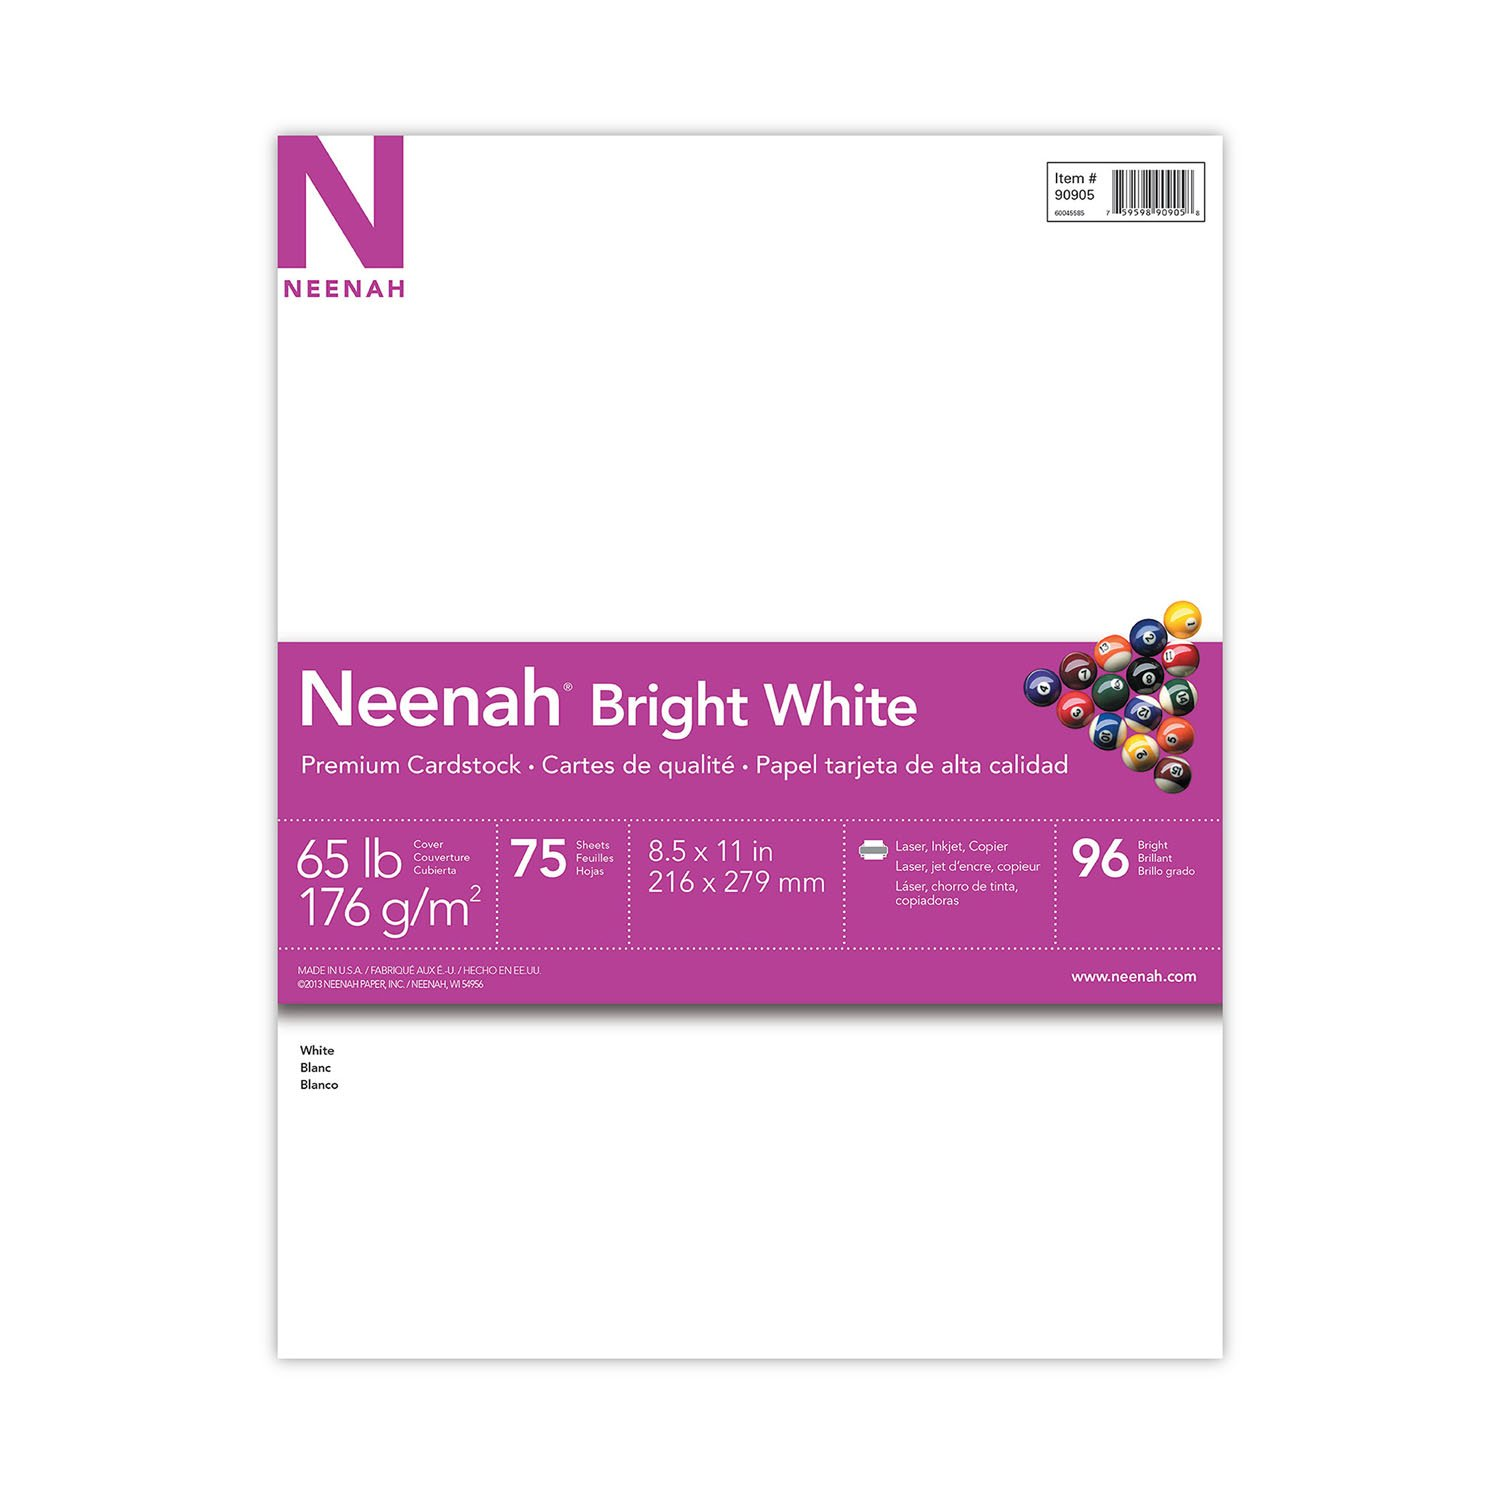 "Neenah Bright White Cardstock, 8.5""x11"", 65lb/176 gsm, Bright White, 75 Sheets (90905)"